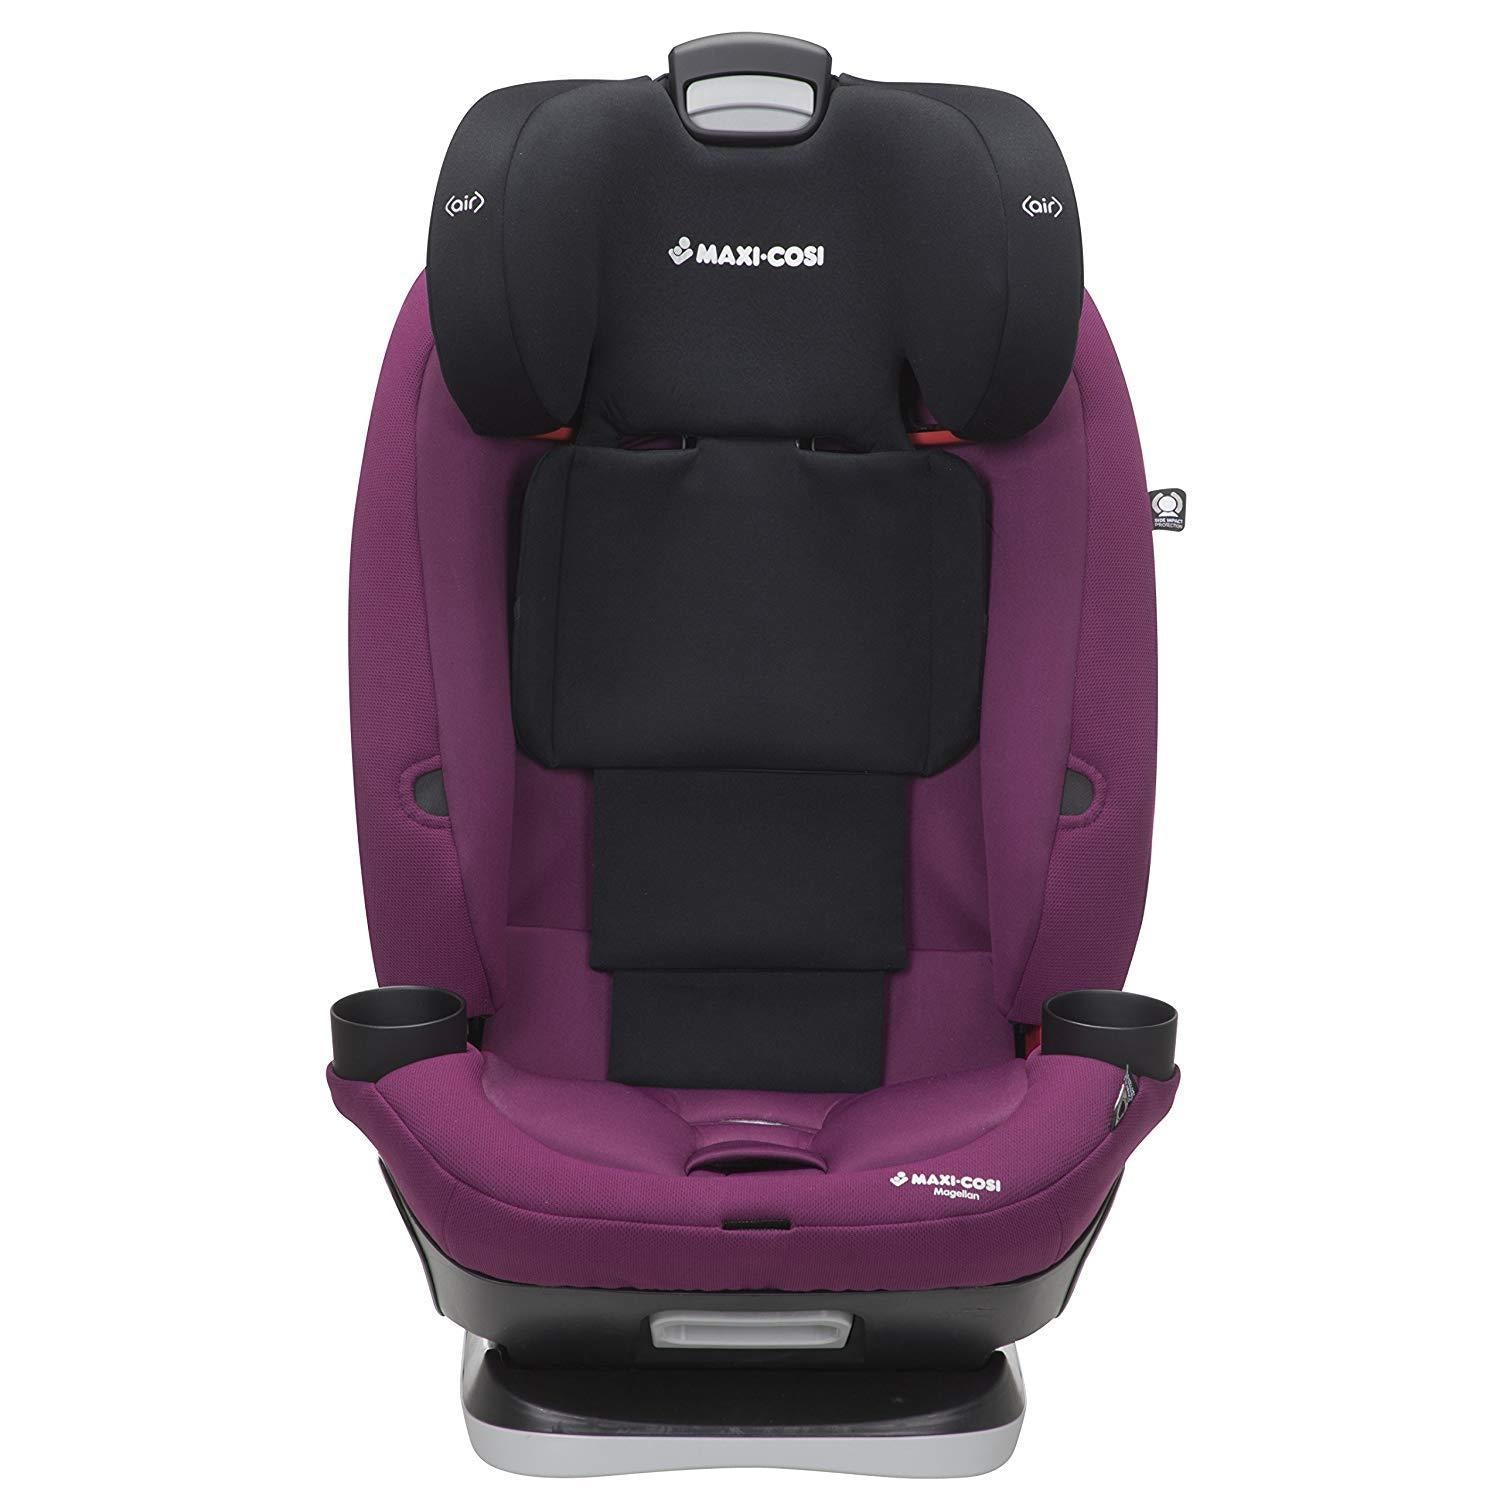 Maxi-Cosi Magellan 5-in-1 All-In-One Convertible Car Seat in Violet Caspia